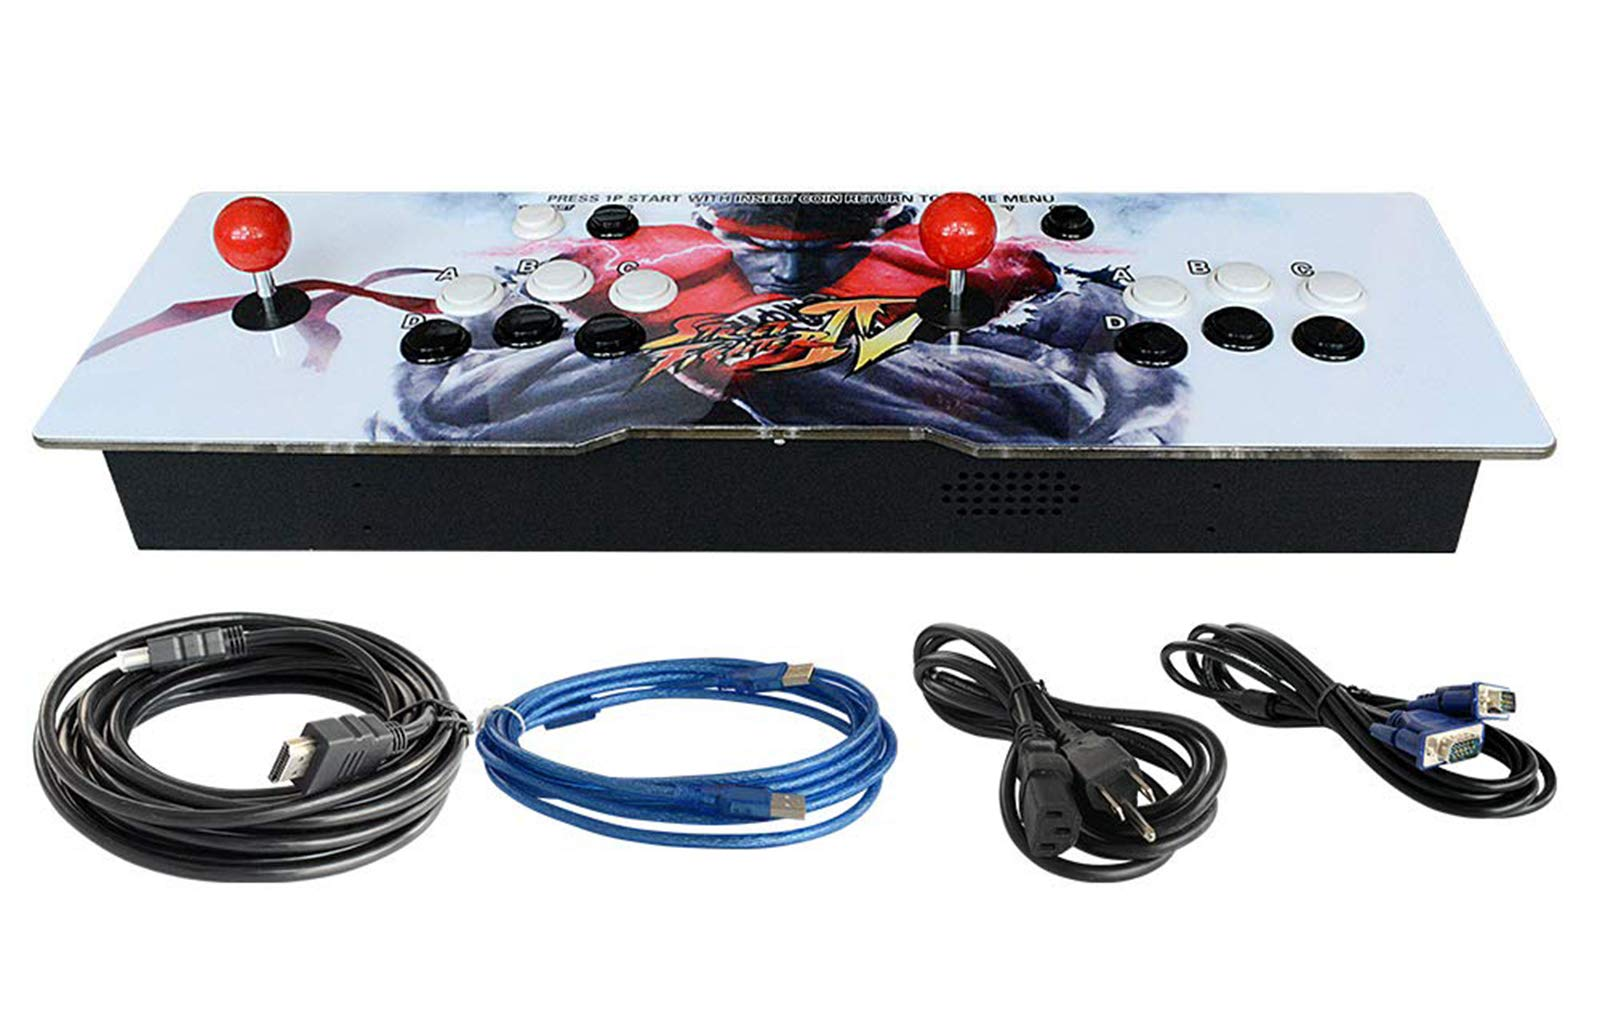 888Warehouse New! Pandora's Box 9S Arcade Console 1080P with 2070 Games in 1, Retro Video Games Double Stick Arcade Console, Supports HDMI and VGA Output for TV and PC by 888Warehouse (Image #2)